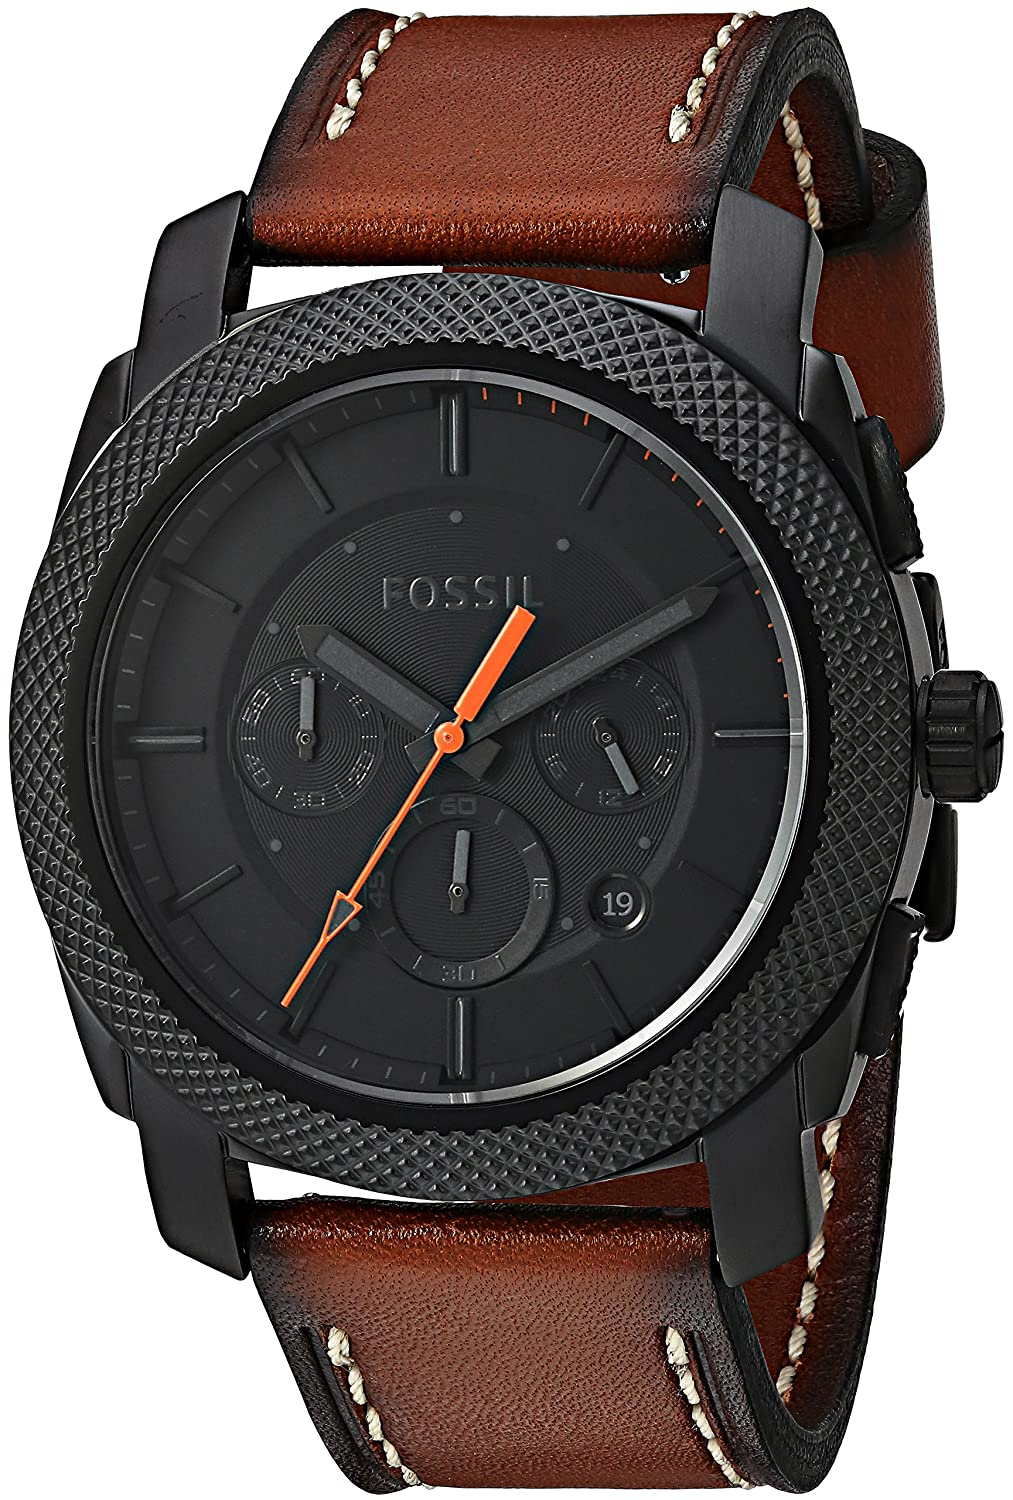 buy fossil nate analog black dial unisex watch jr1354 online at fossil chronograph black dial men s watch fs5234